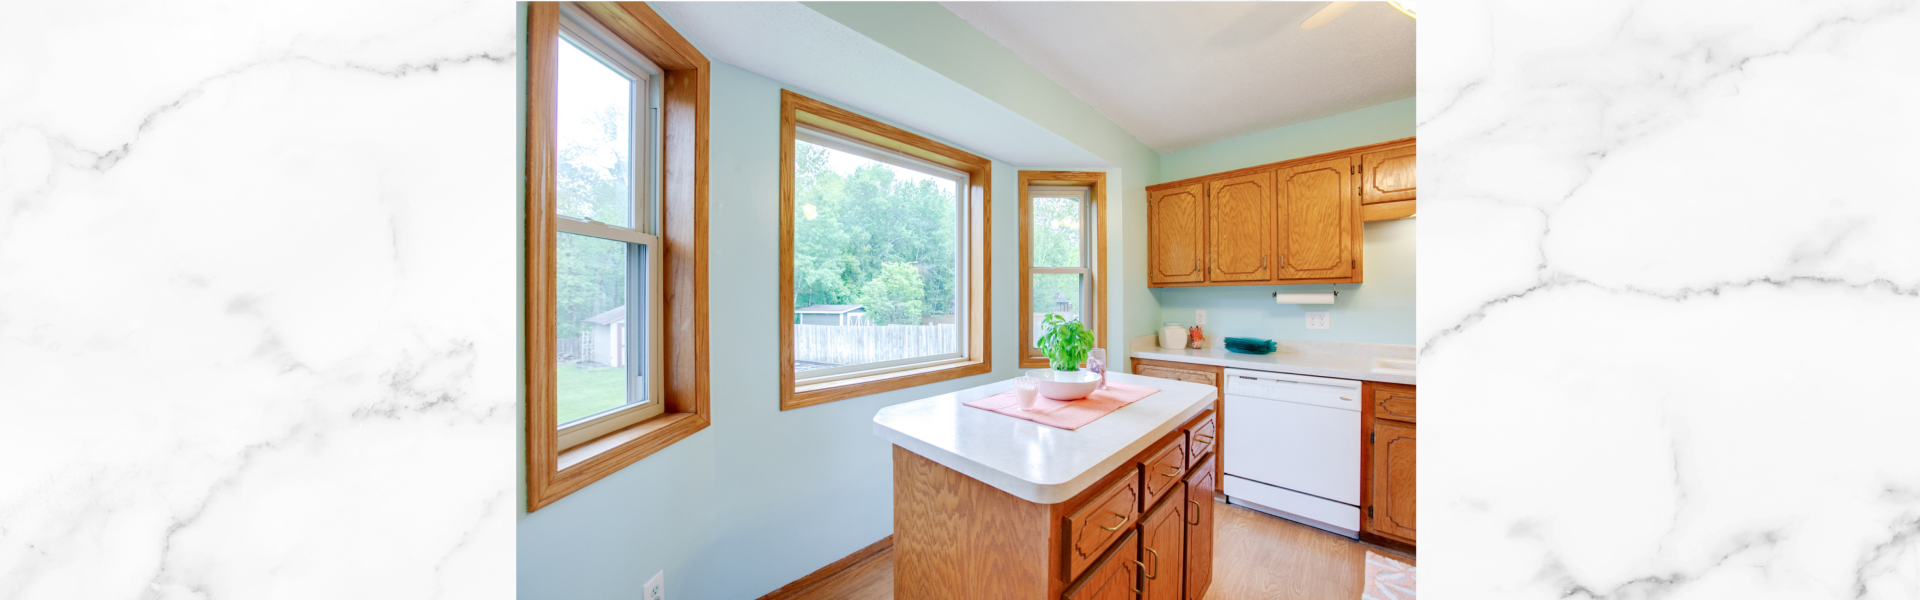 Just Sold: 13565 Freeland Ave